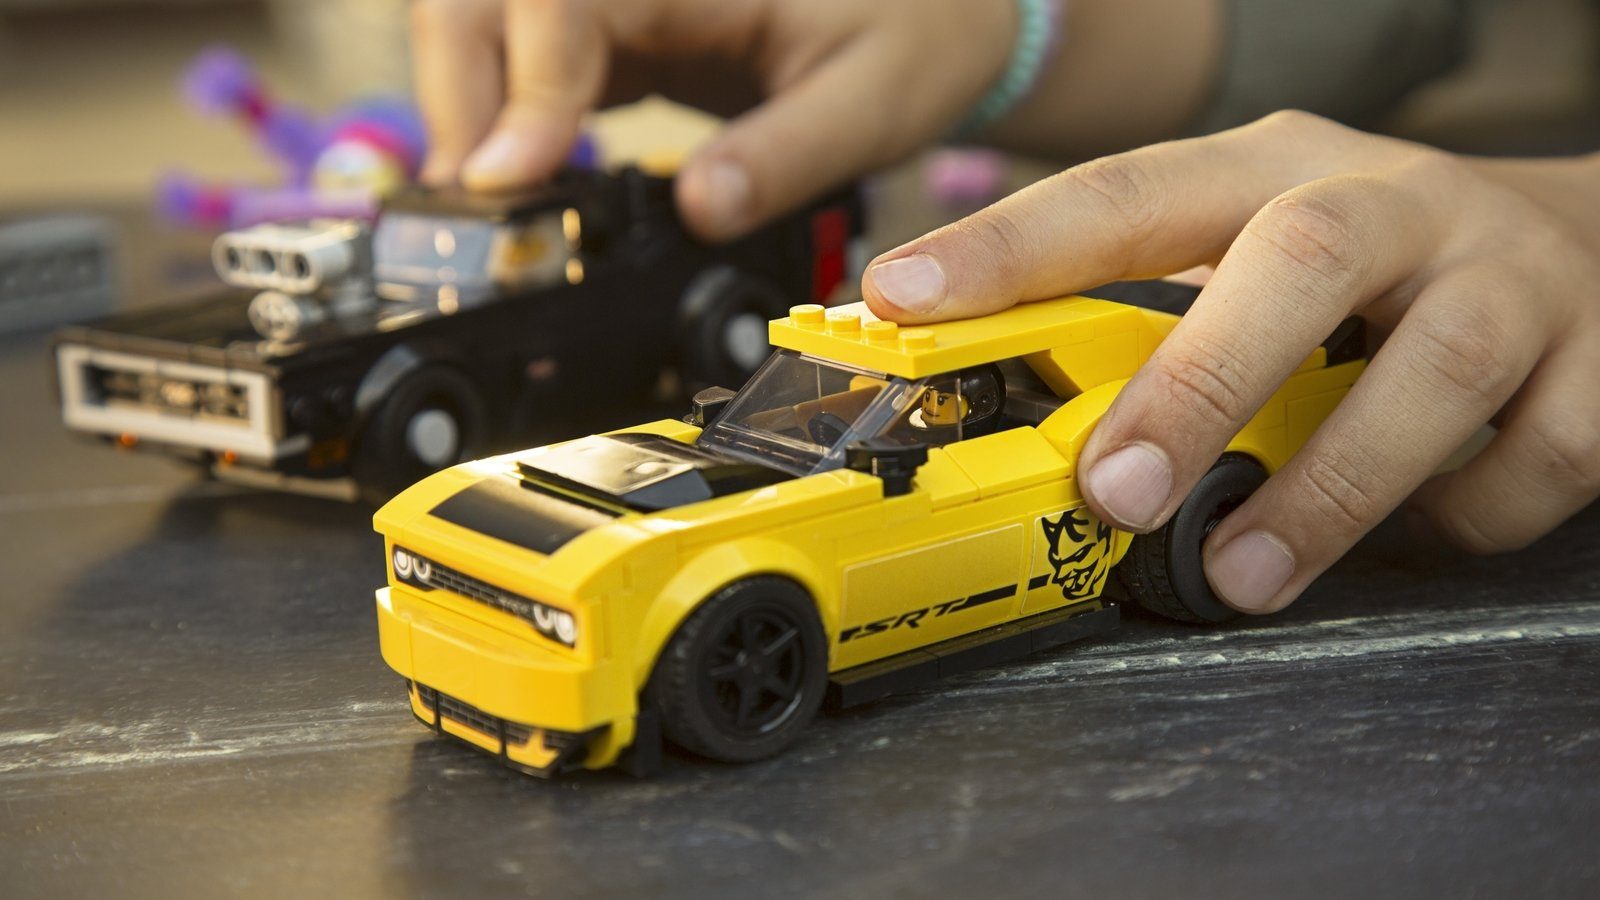 LEGO And Dodge's Latest Collaboration Gives Our Mini Figs ...